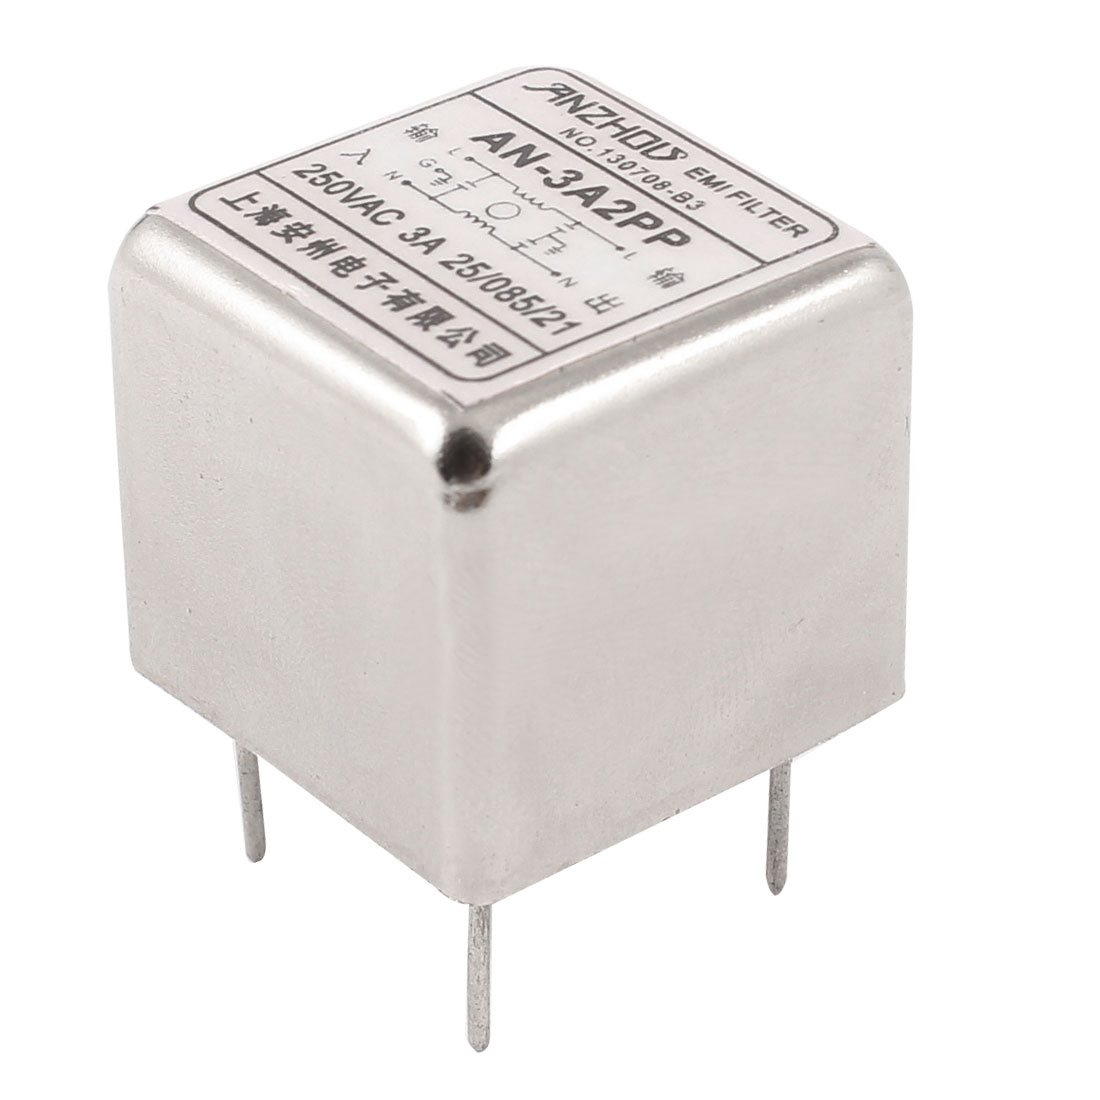 AN-3A2PP AC250V 3A 5-Pin Single Phase Through Hole Mounting Noise Suppressor General Purpose Power EMI Filter